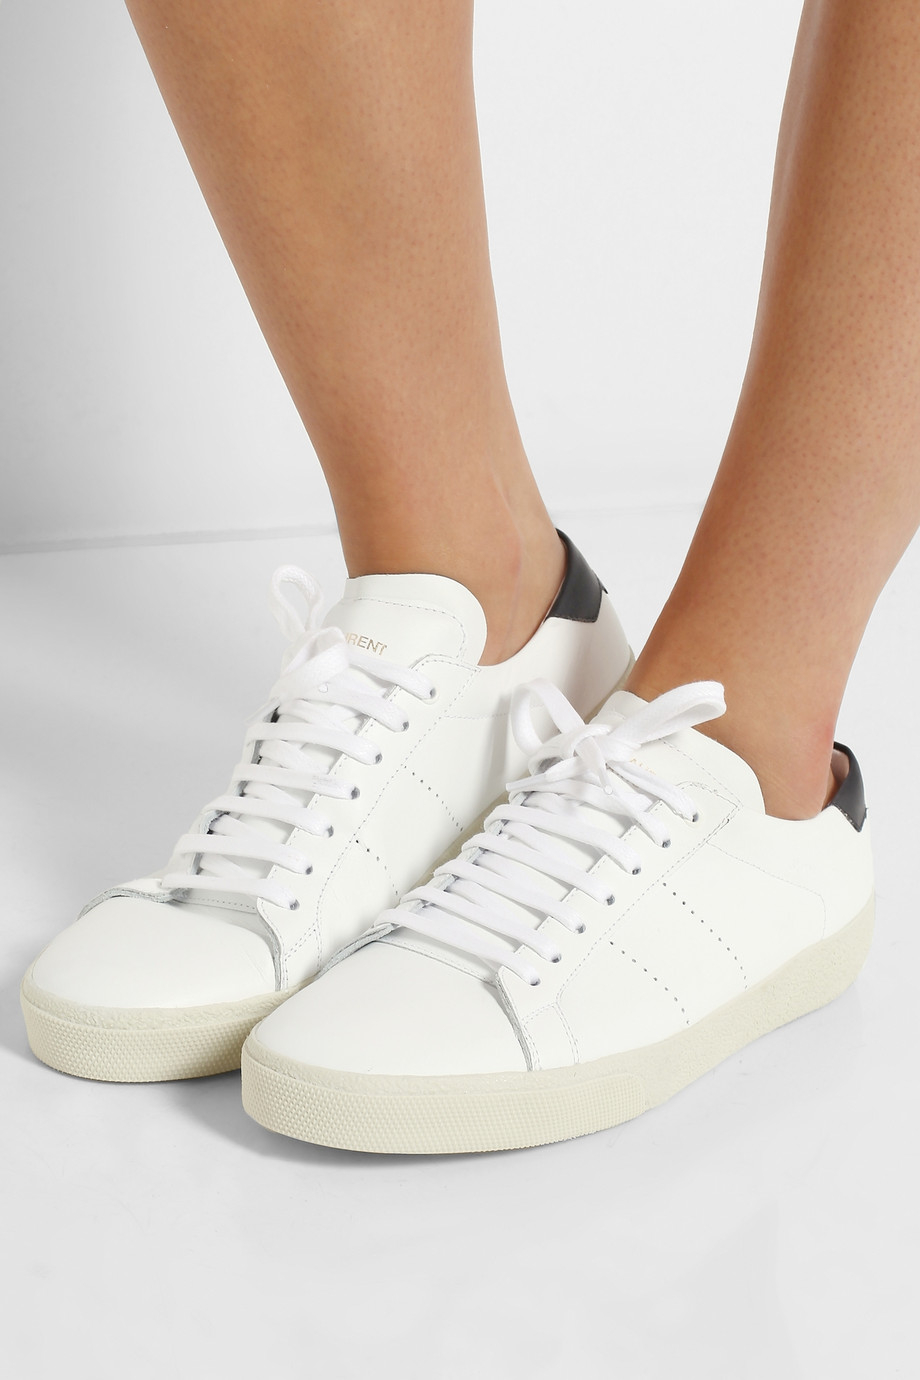 saint laurent court classic leather sneakers in white lyst. Black Bedroom Furniture Sets. Home Design Ideas